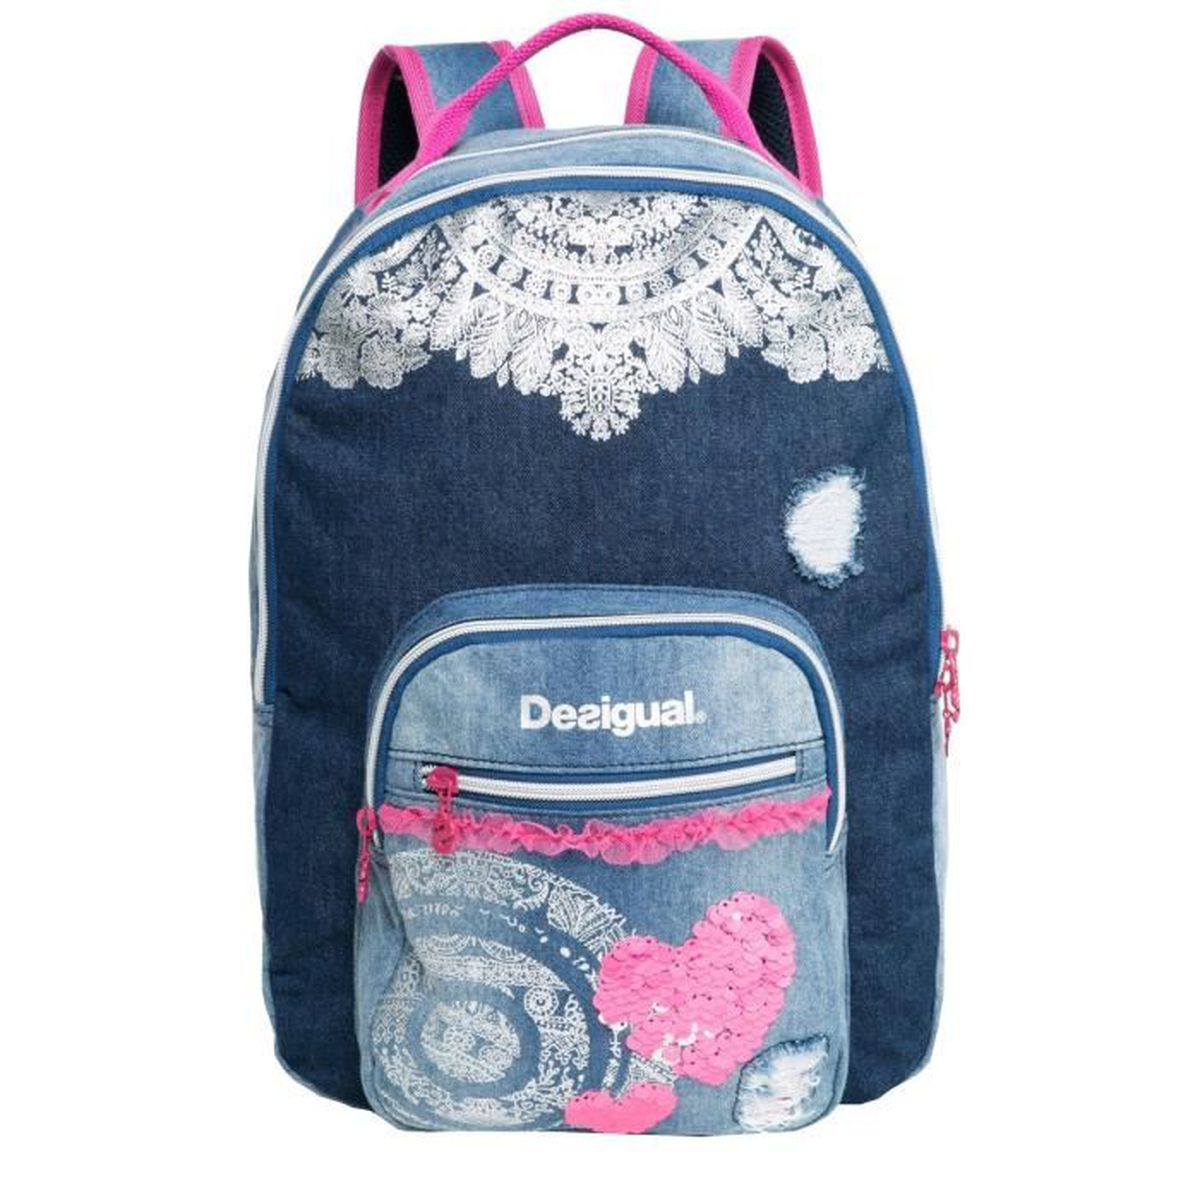 sac dos desigual mochila denim 67x31f7 5006 bleu bleu achat vente sac dos 2009836255354. Black Bedroom Furniture Sets. Home Design Ideas